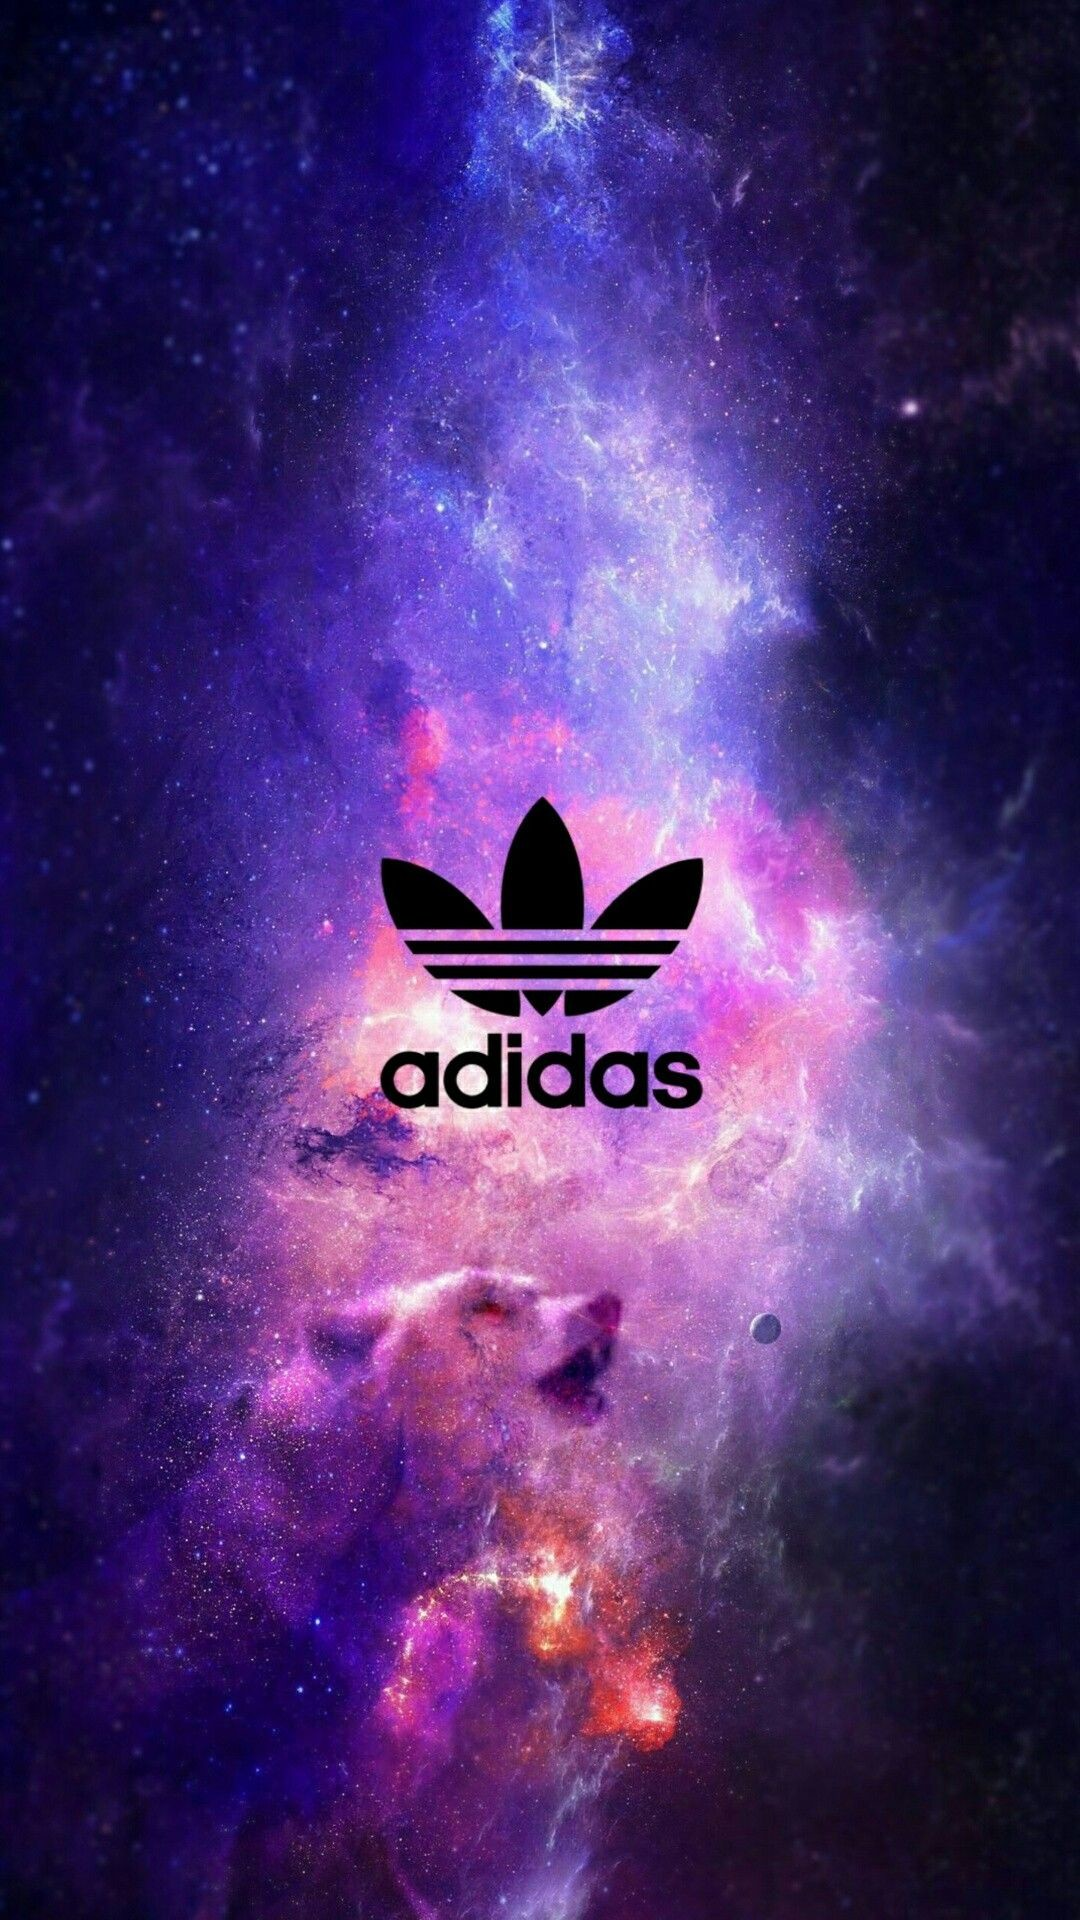 Res: 1080x1920, Adidas Wallpaper/Graphic